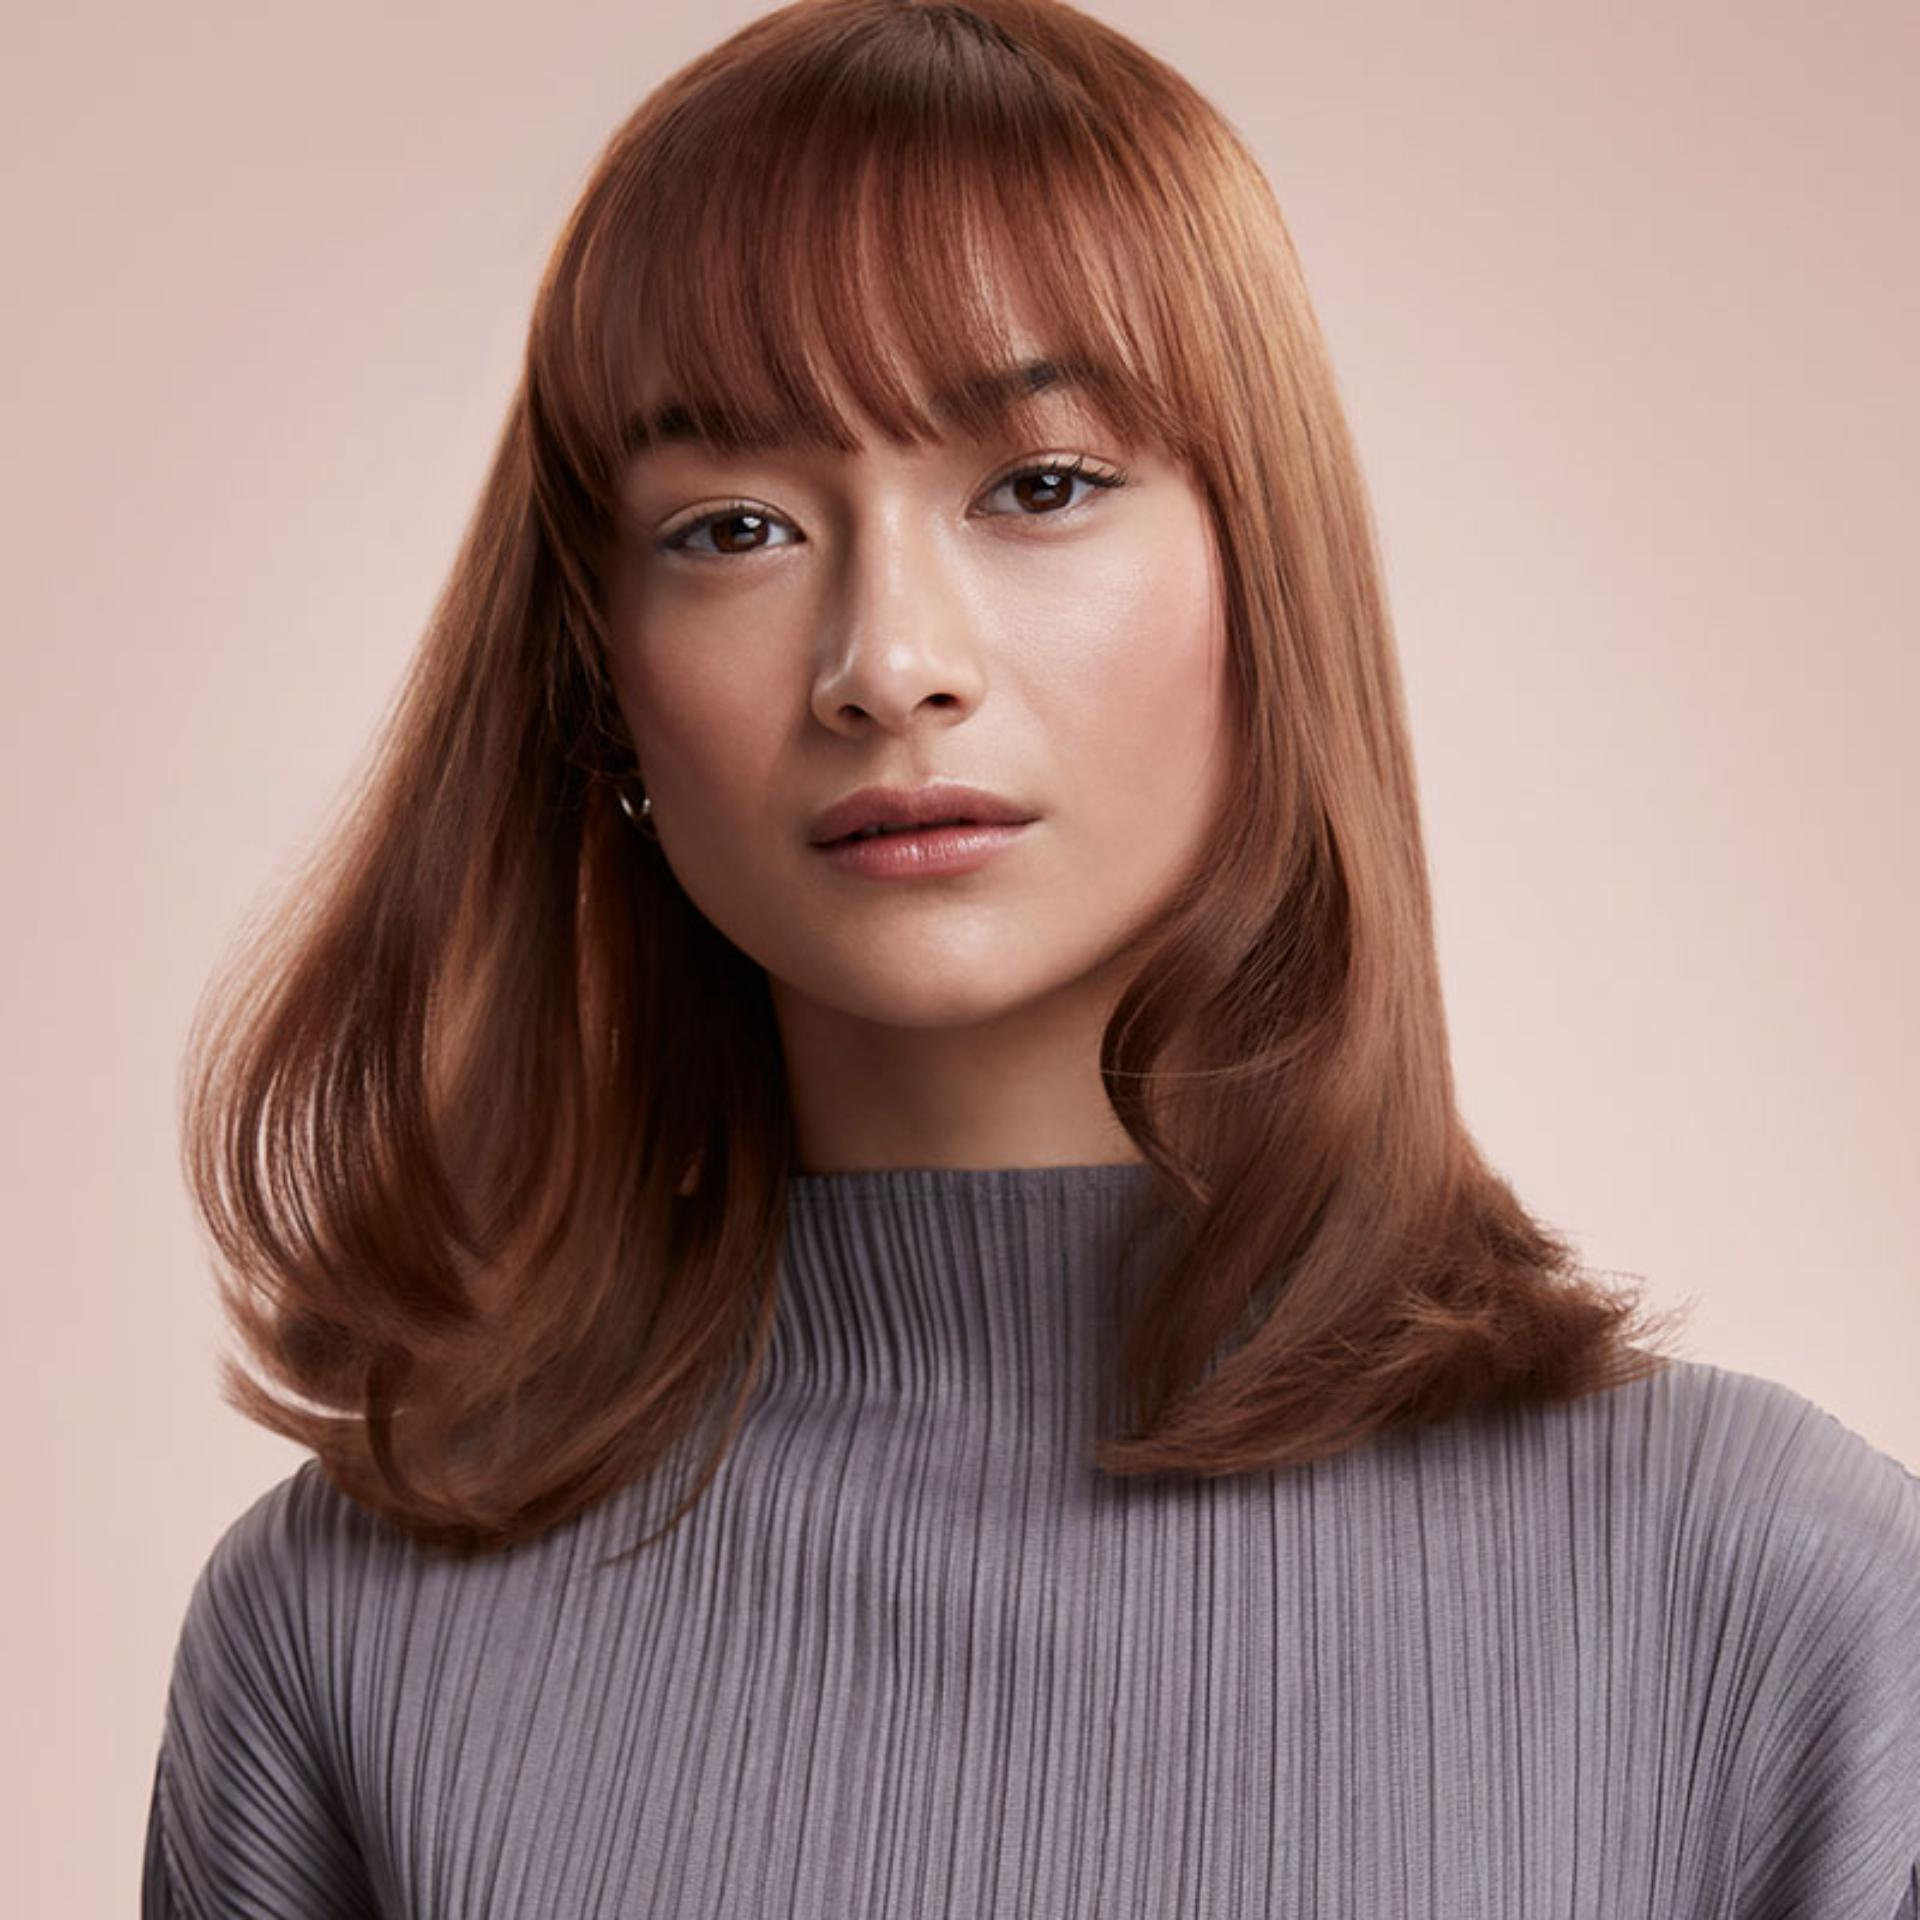 Model with amplified, smooth hair